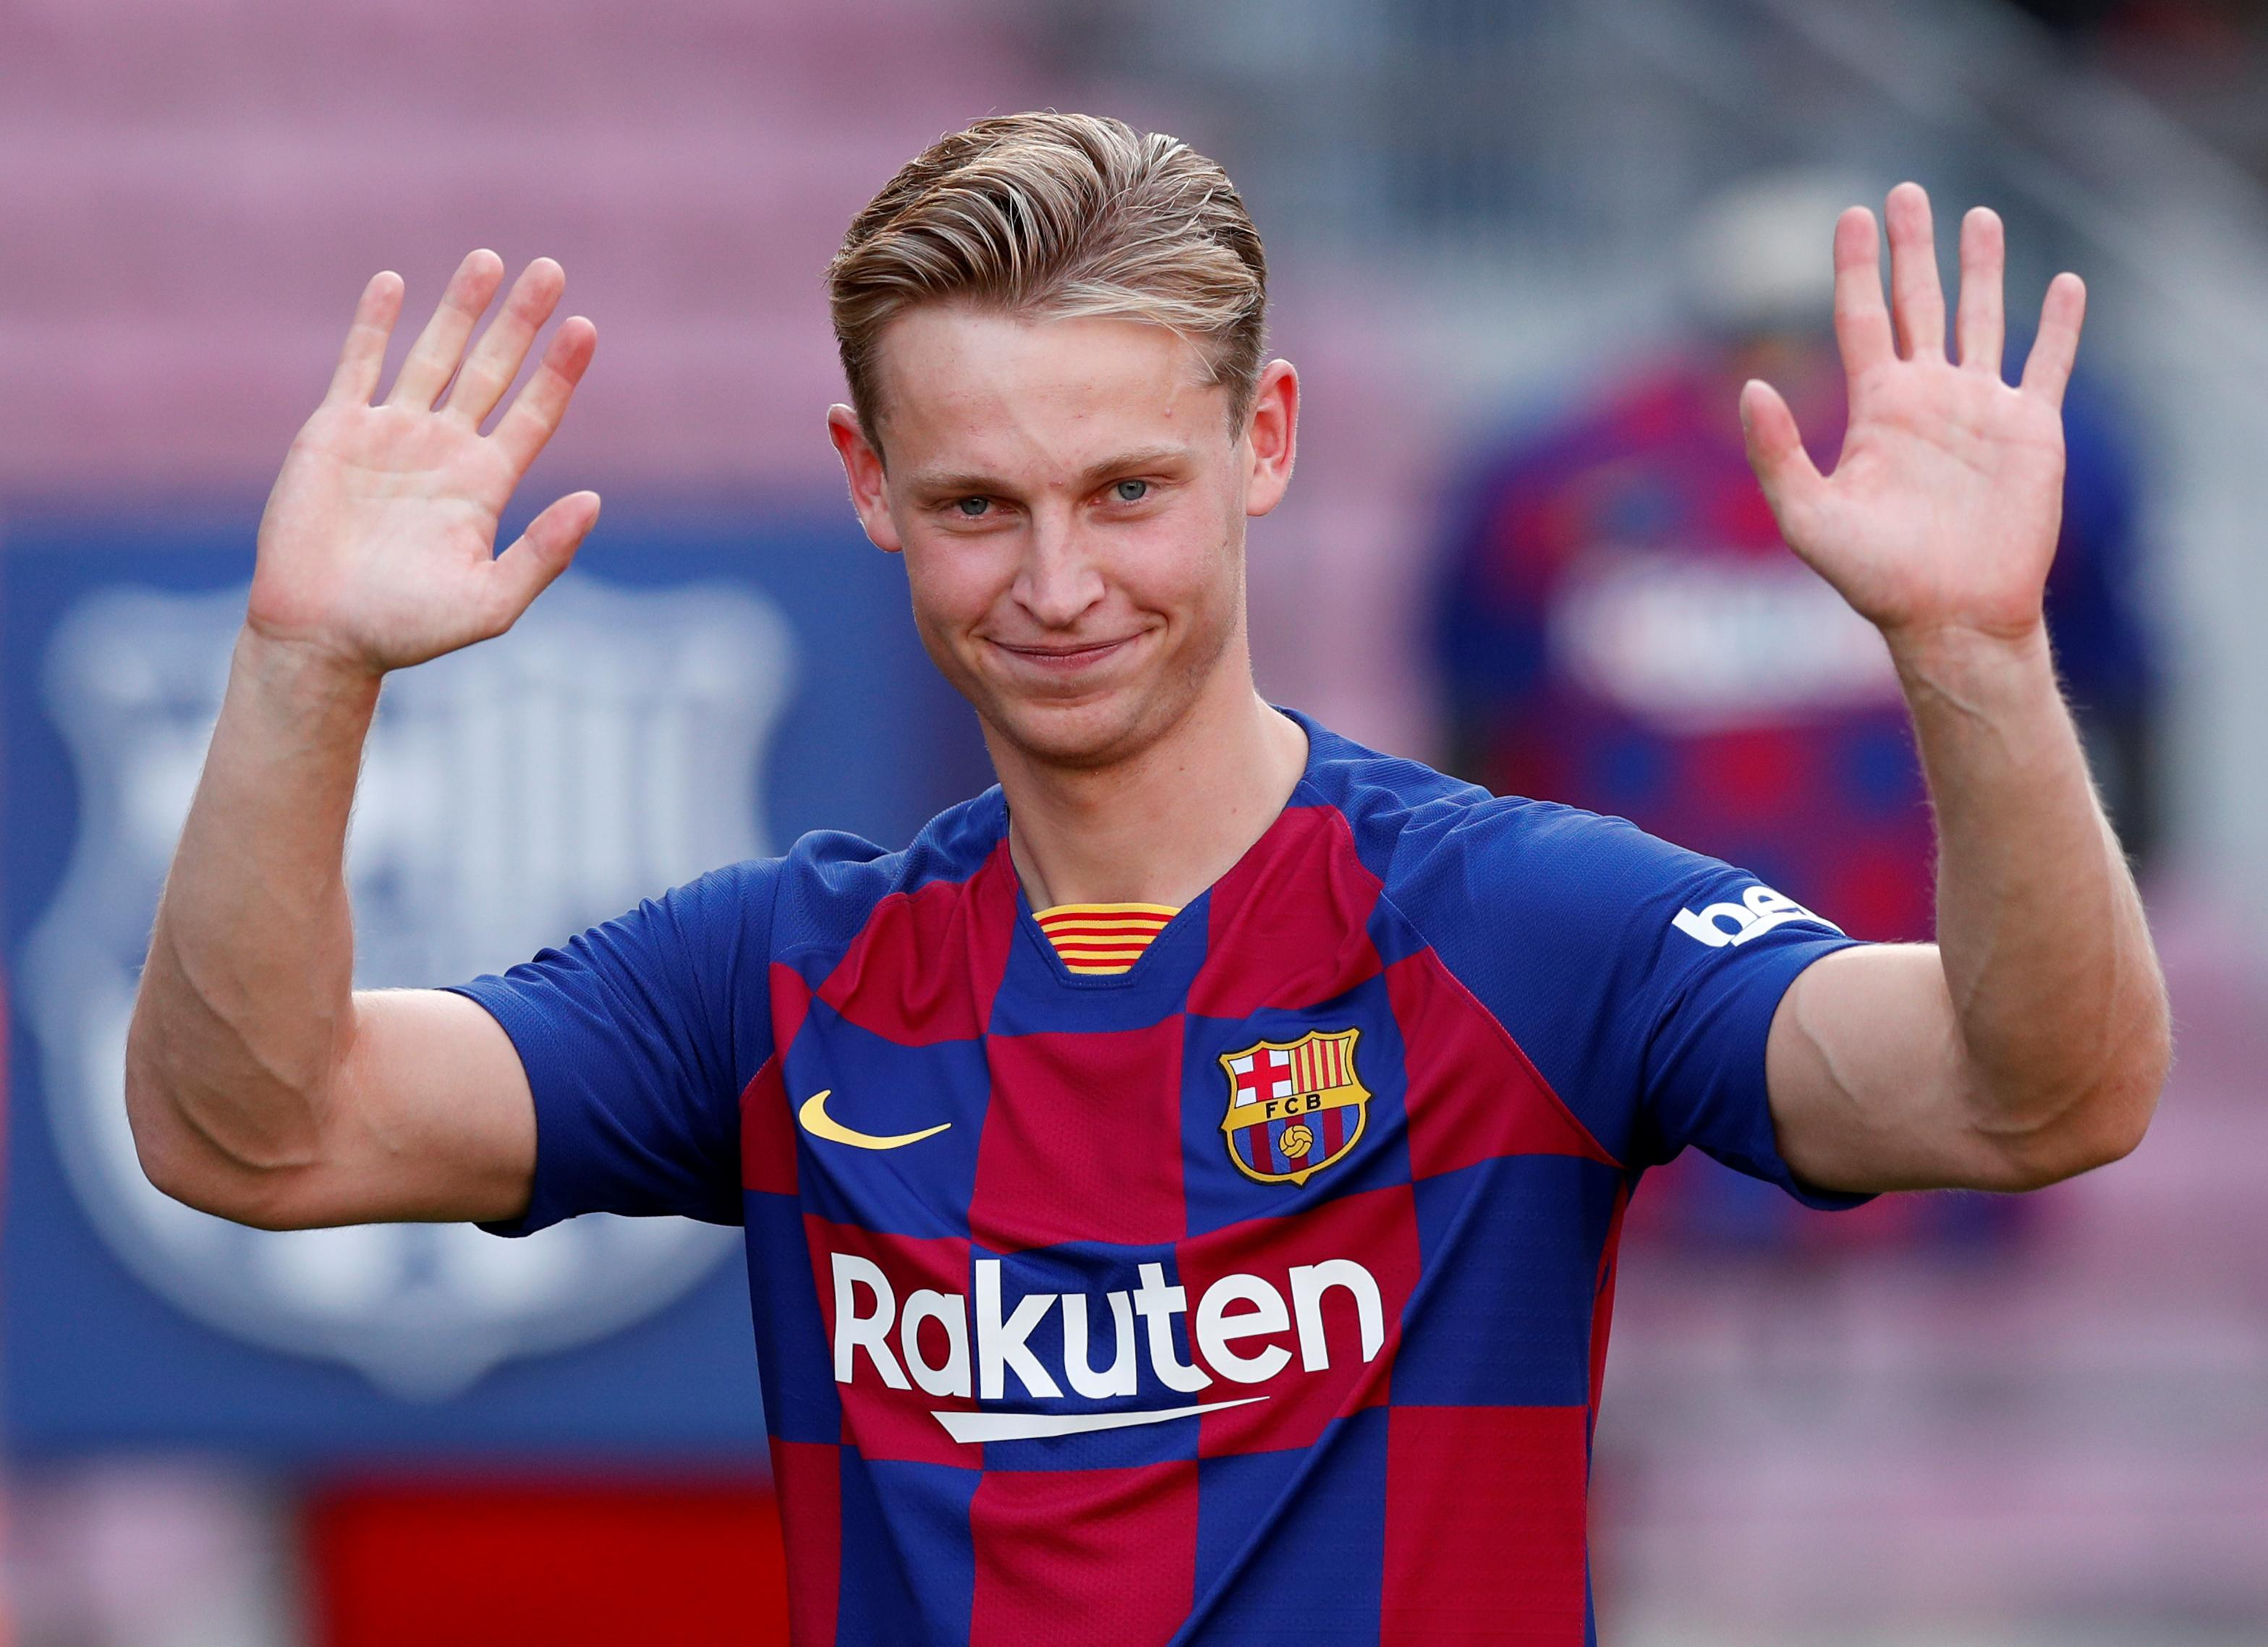 Twenty thousand Barca fans turn out to greet new signing De Jong